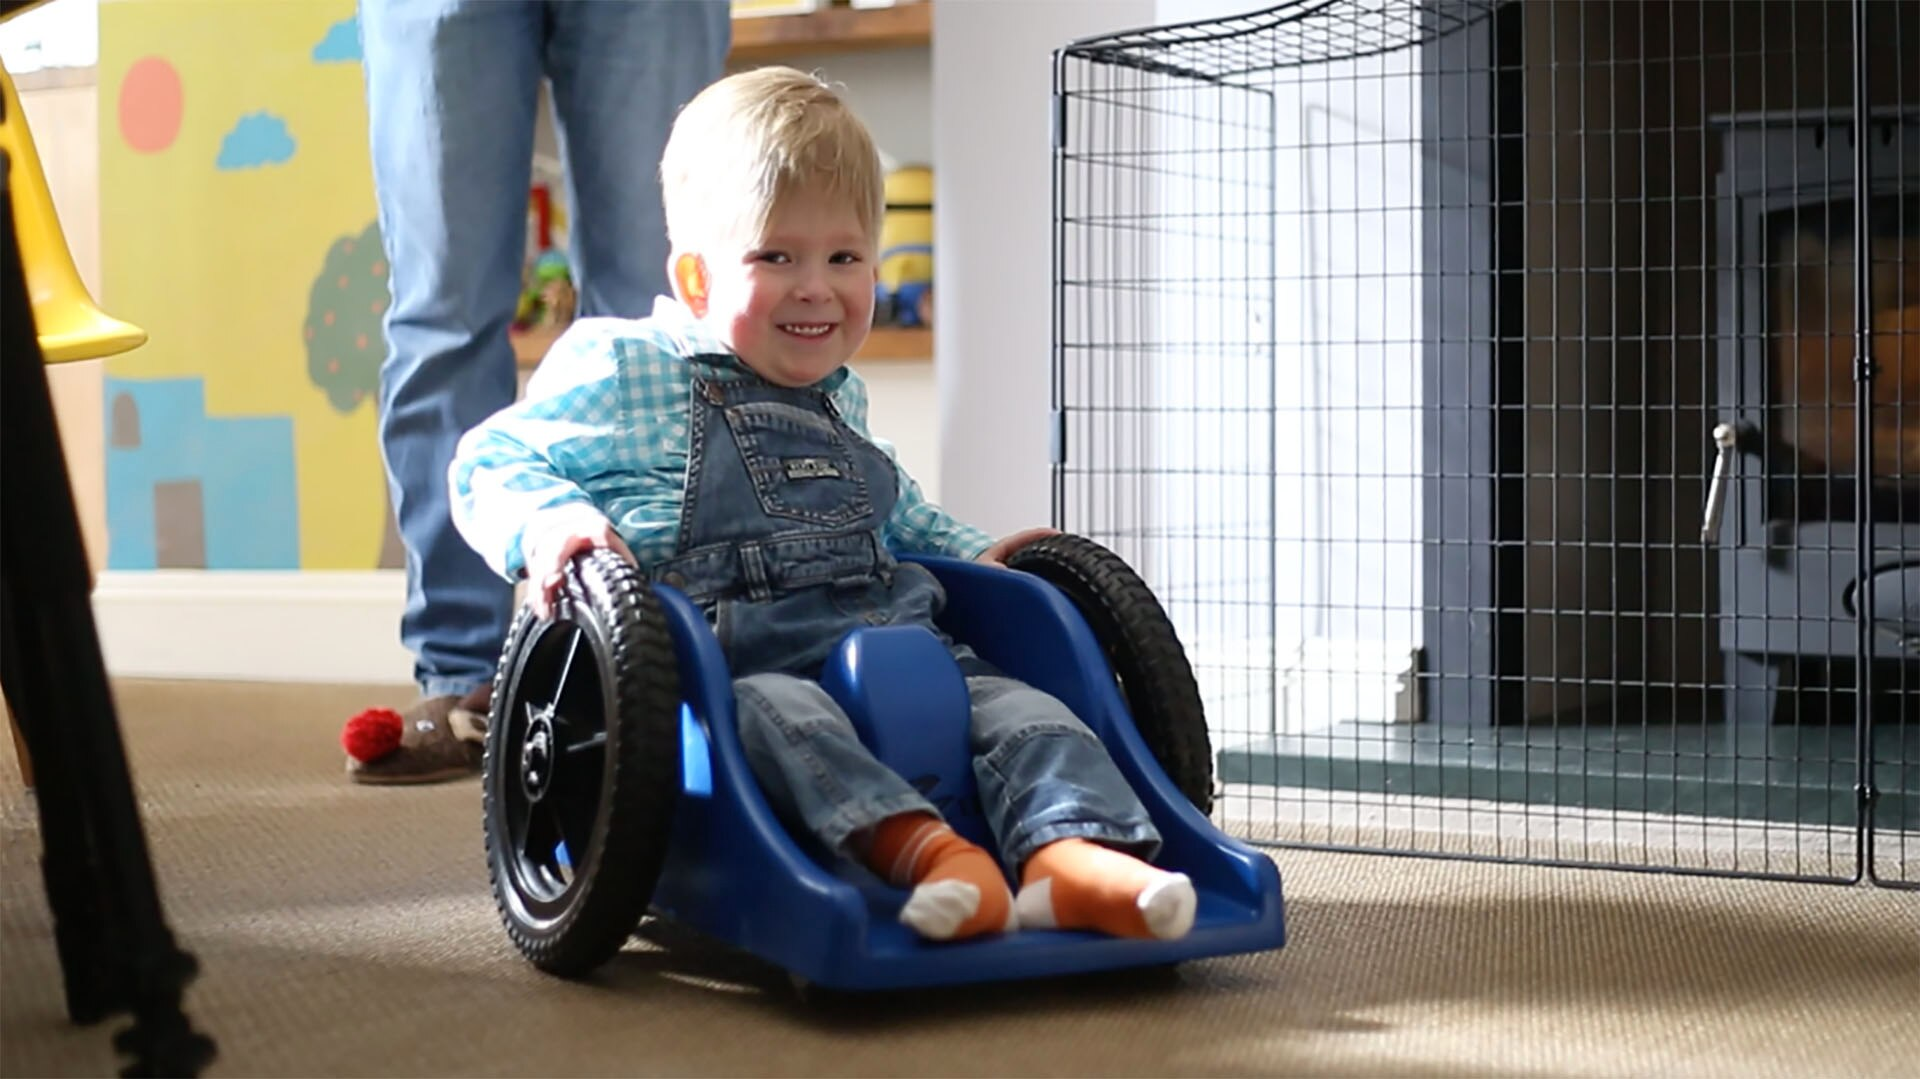 The boy born without a brain is now a practical joker who loves playing Mario Kart